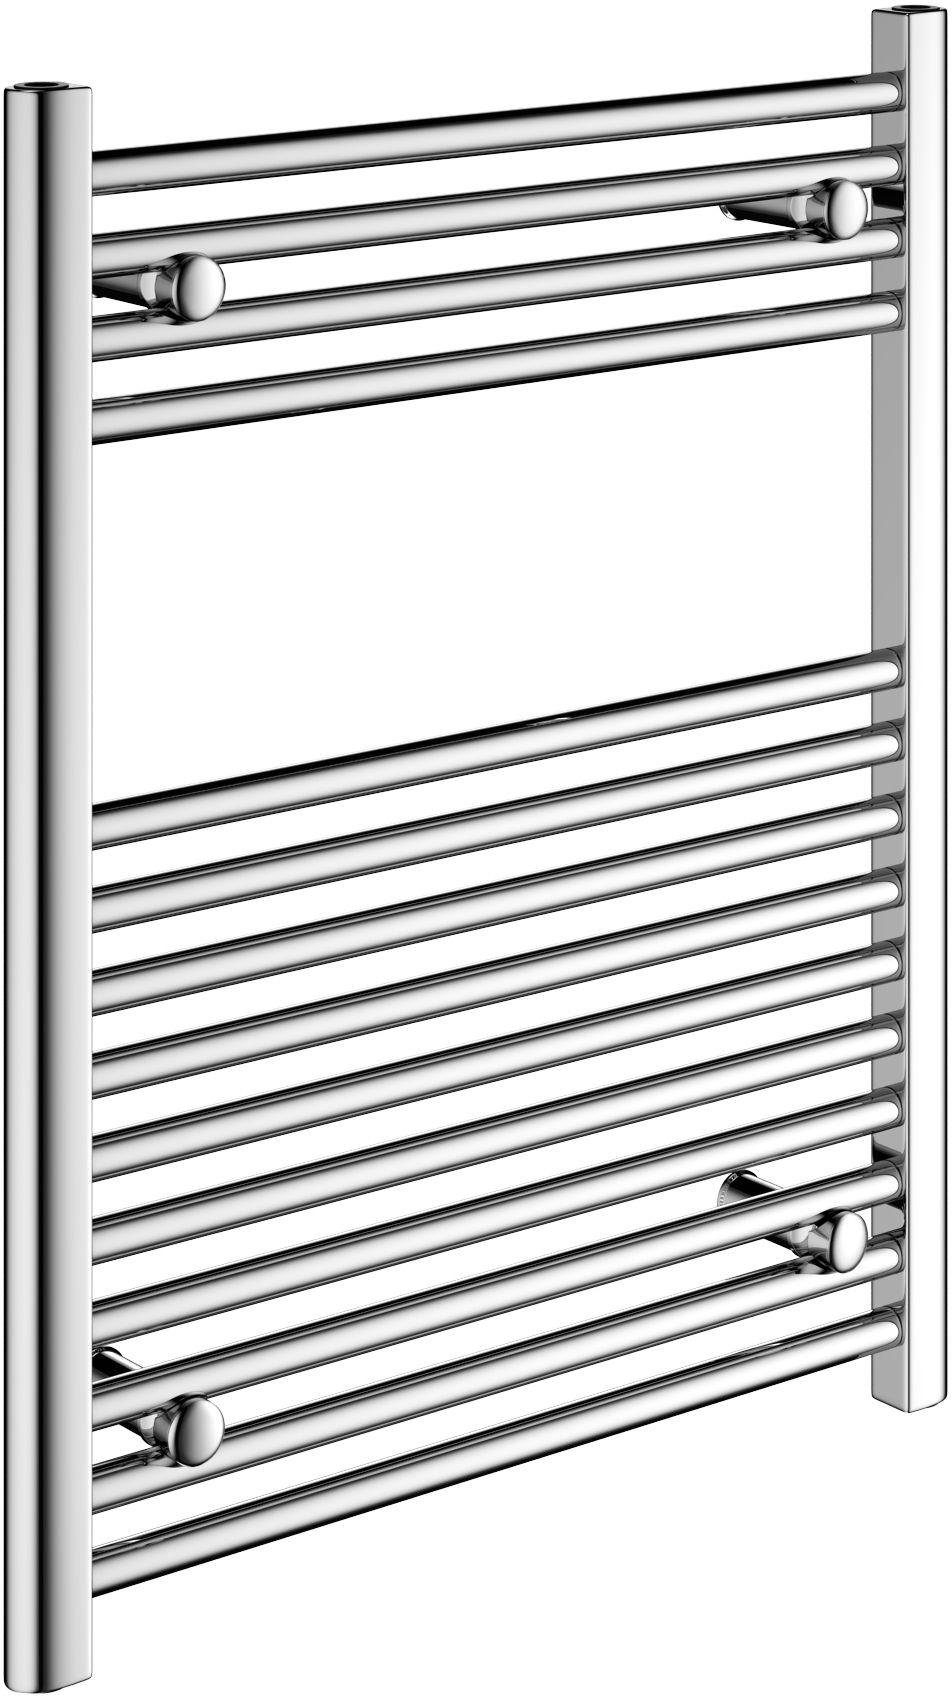 straight-towel-radiator-75-x-60cm-chrome